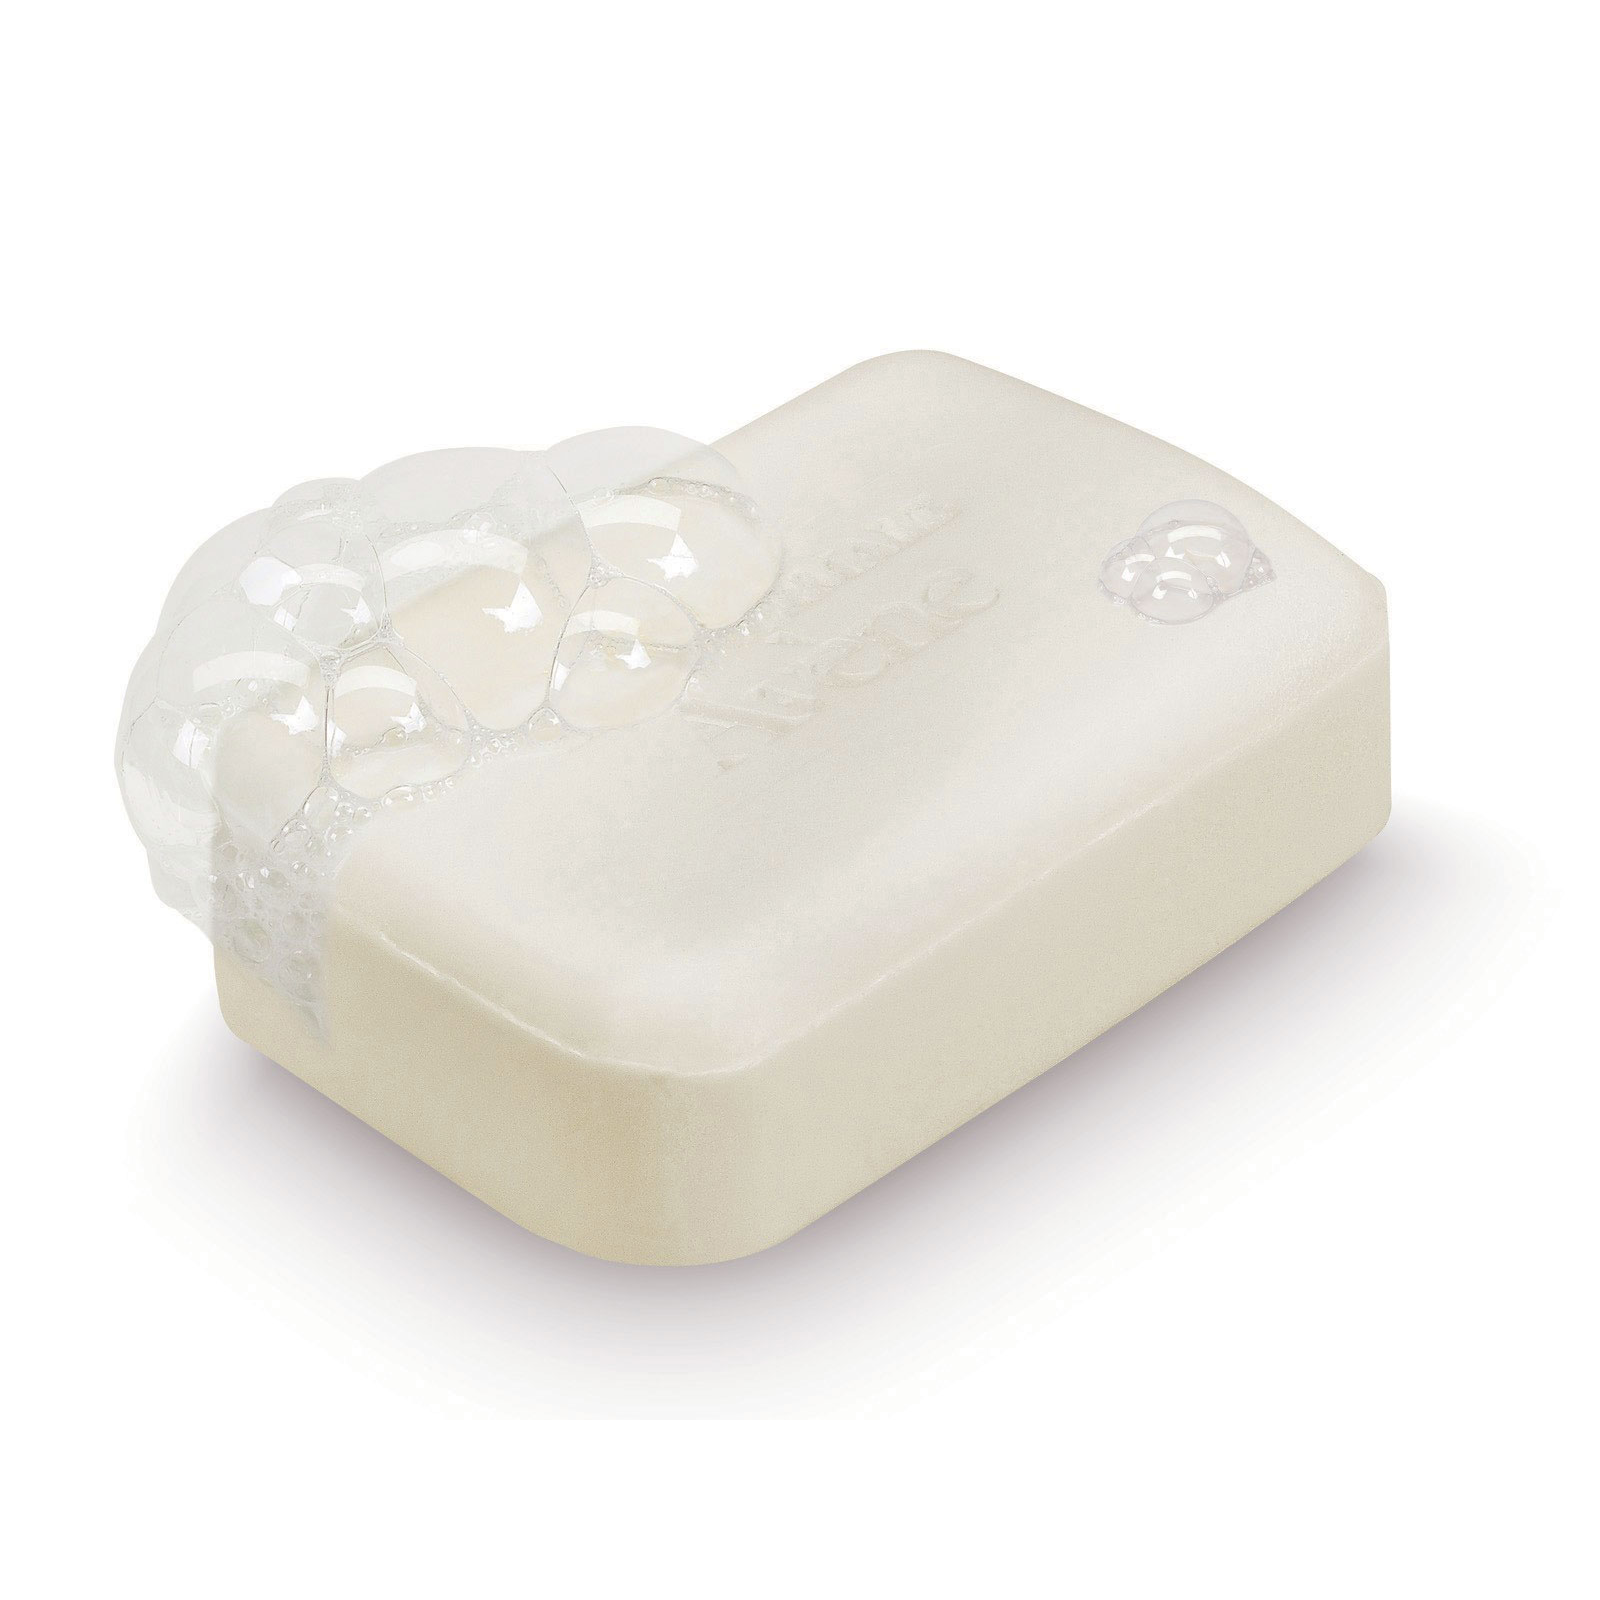 Soap Png Free & Free Soap.png Transparent Images #6826 - PNGio